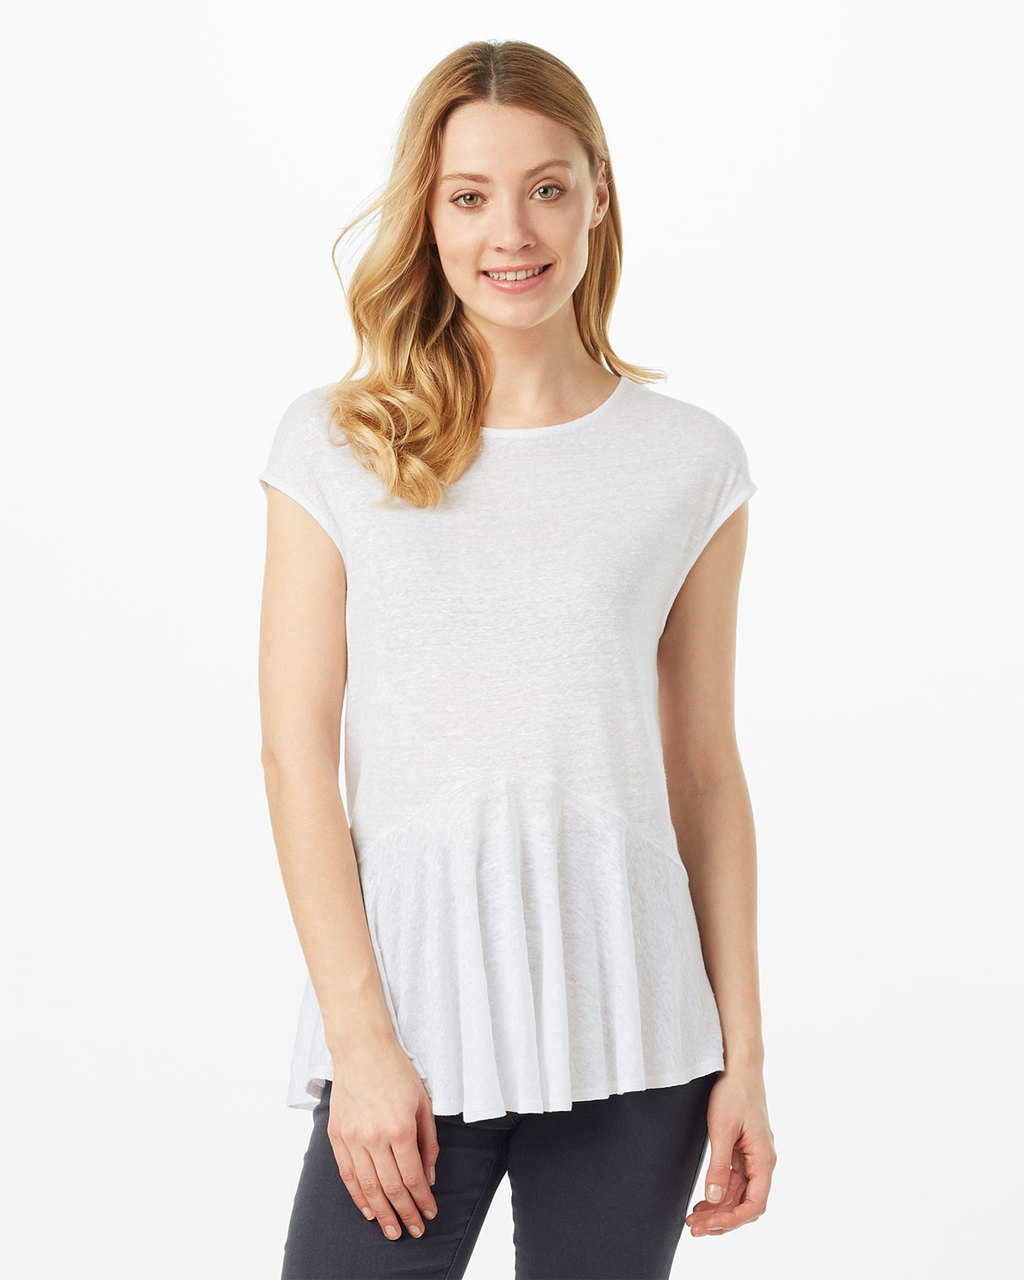 Bernadette Linen Top - pattern: plain; predominant colour: ivory/cream; occasions: casual; length: standard; style: top; fibres: linen - 100%; fit: body skimming; neckline: crew; sleeve length: short sleeve; sleeve style: standard; pattern type: fabric; texture group: jersey - stretchy/drapey; season: s/s 2016